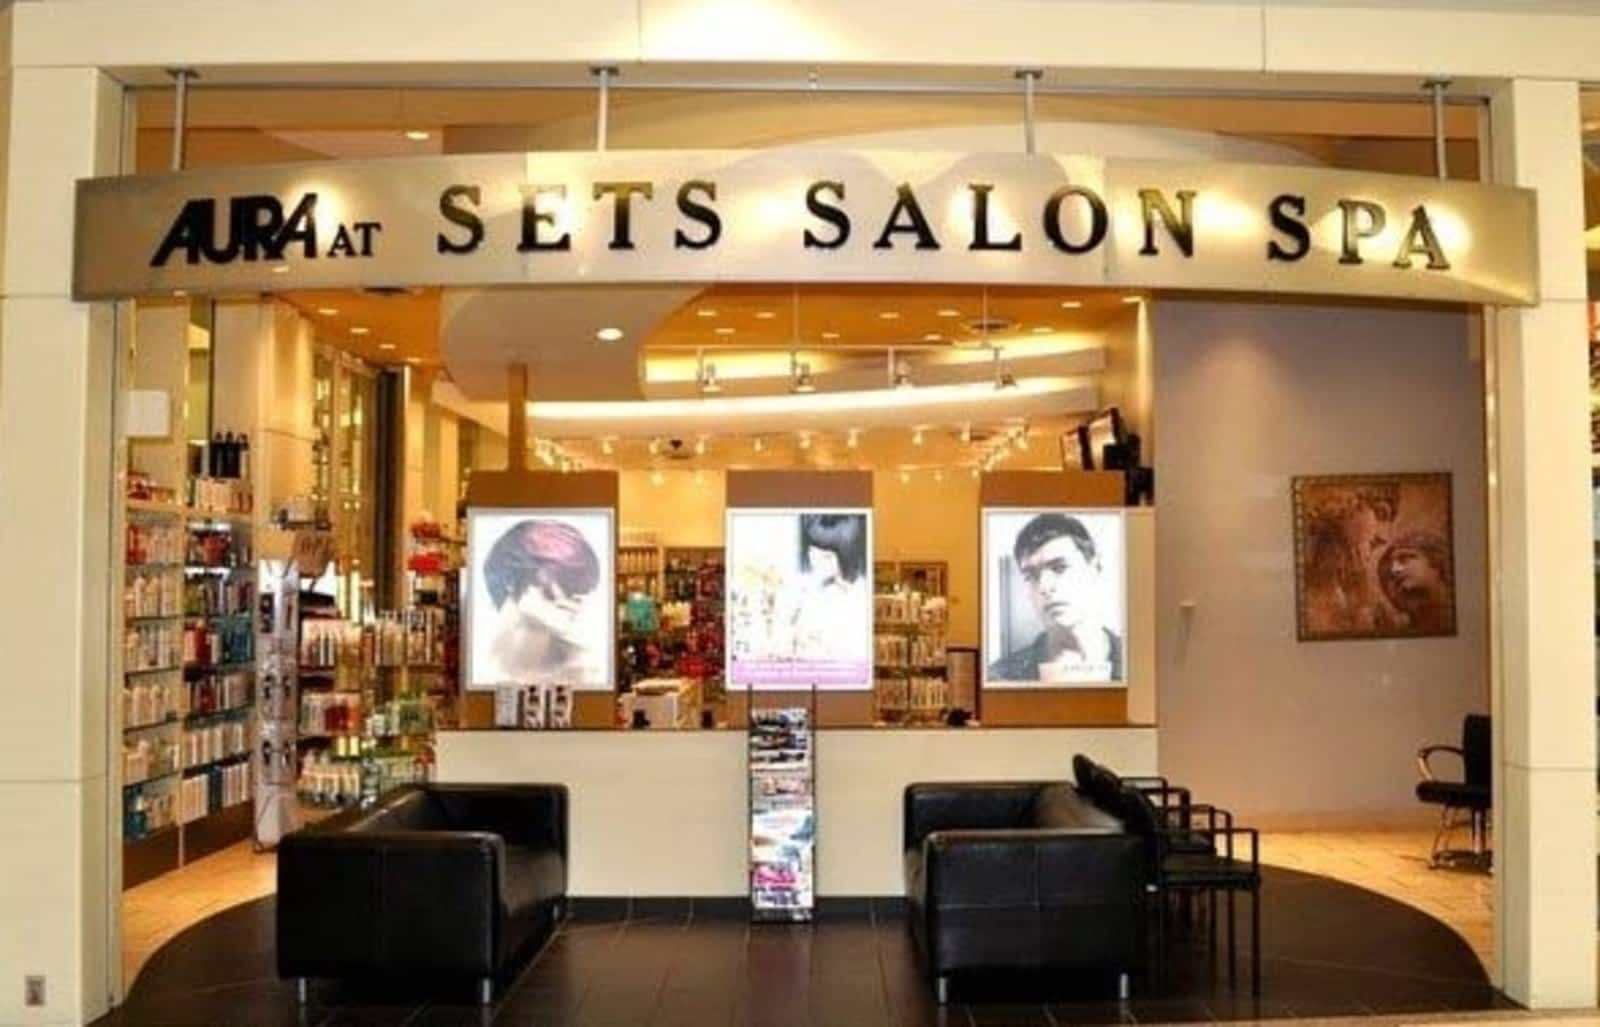 Aura At Sets Salon Spa Opening Hours 1230 4700 Kingsway Burnaby Bc